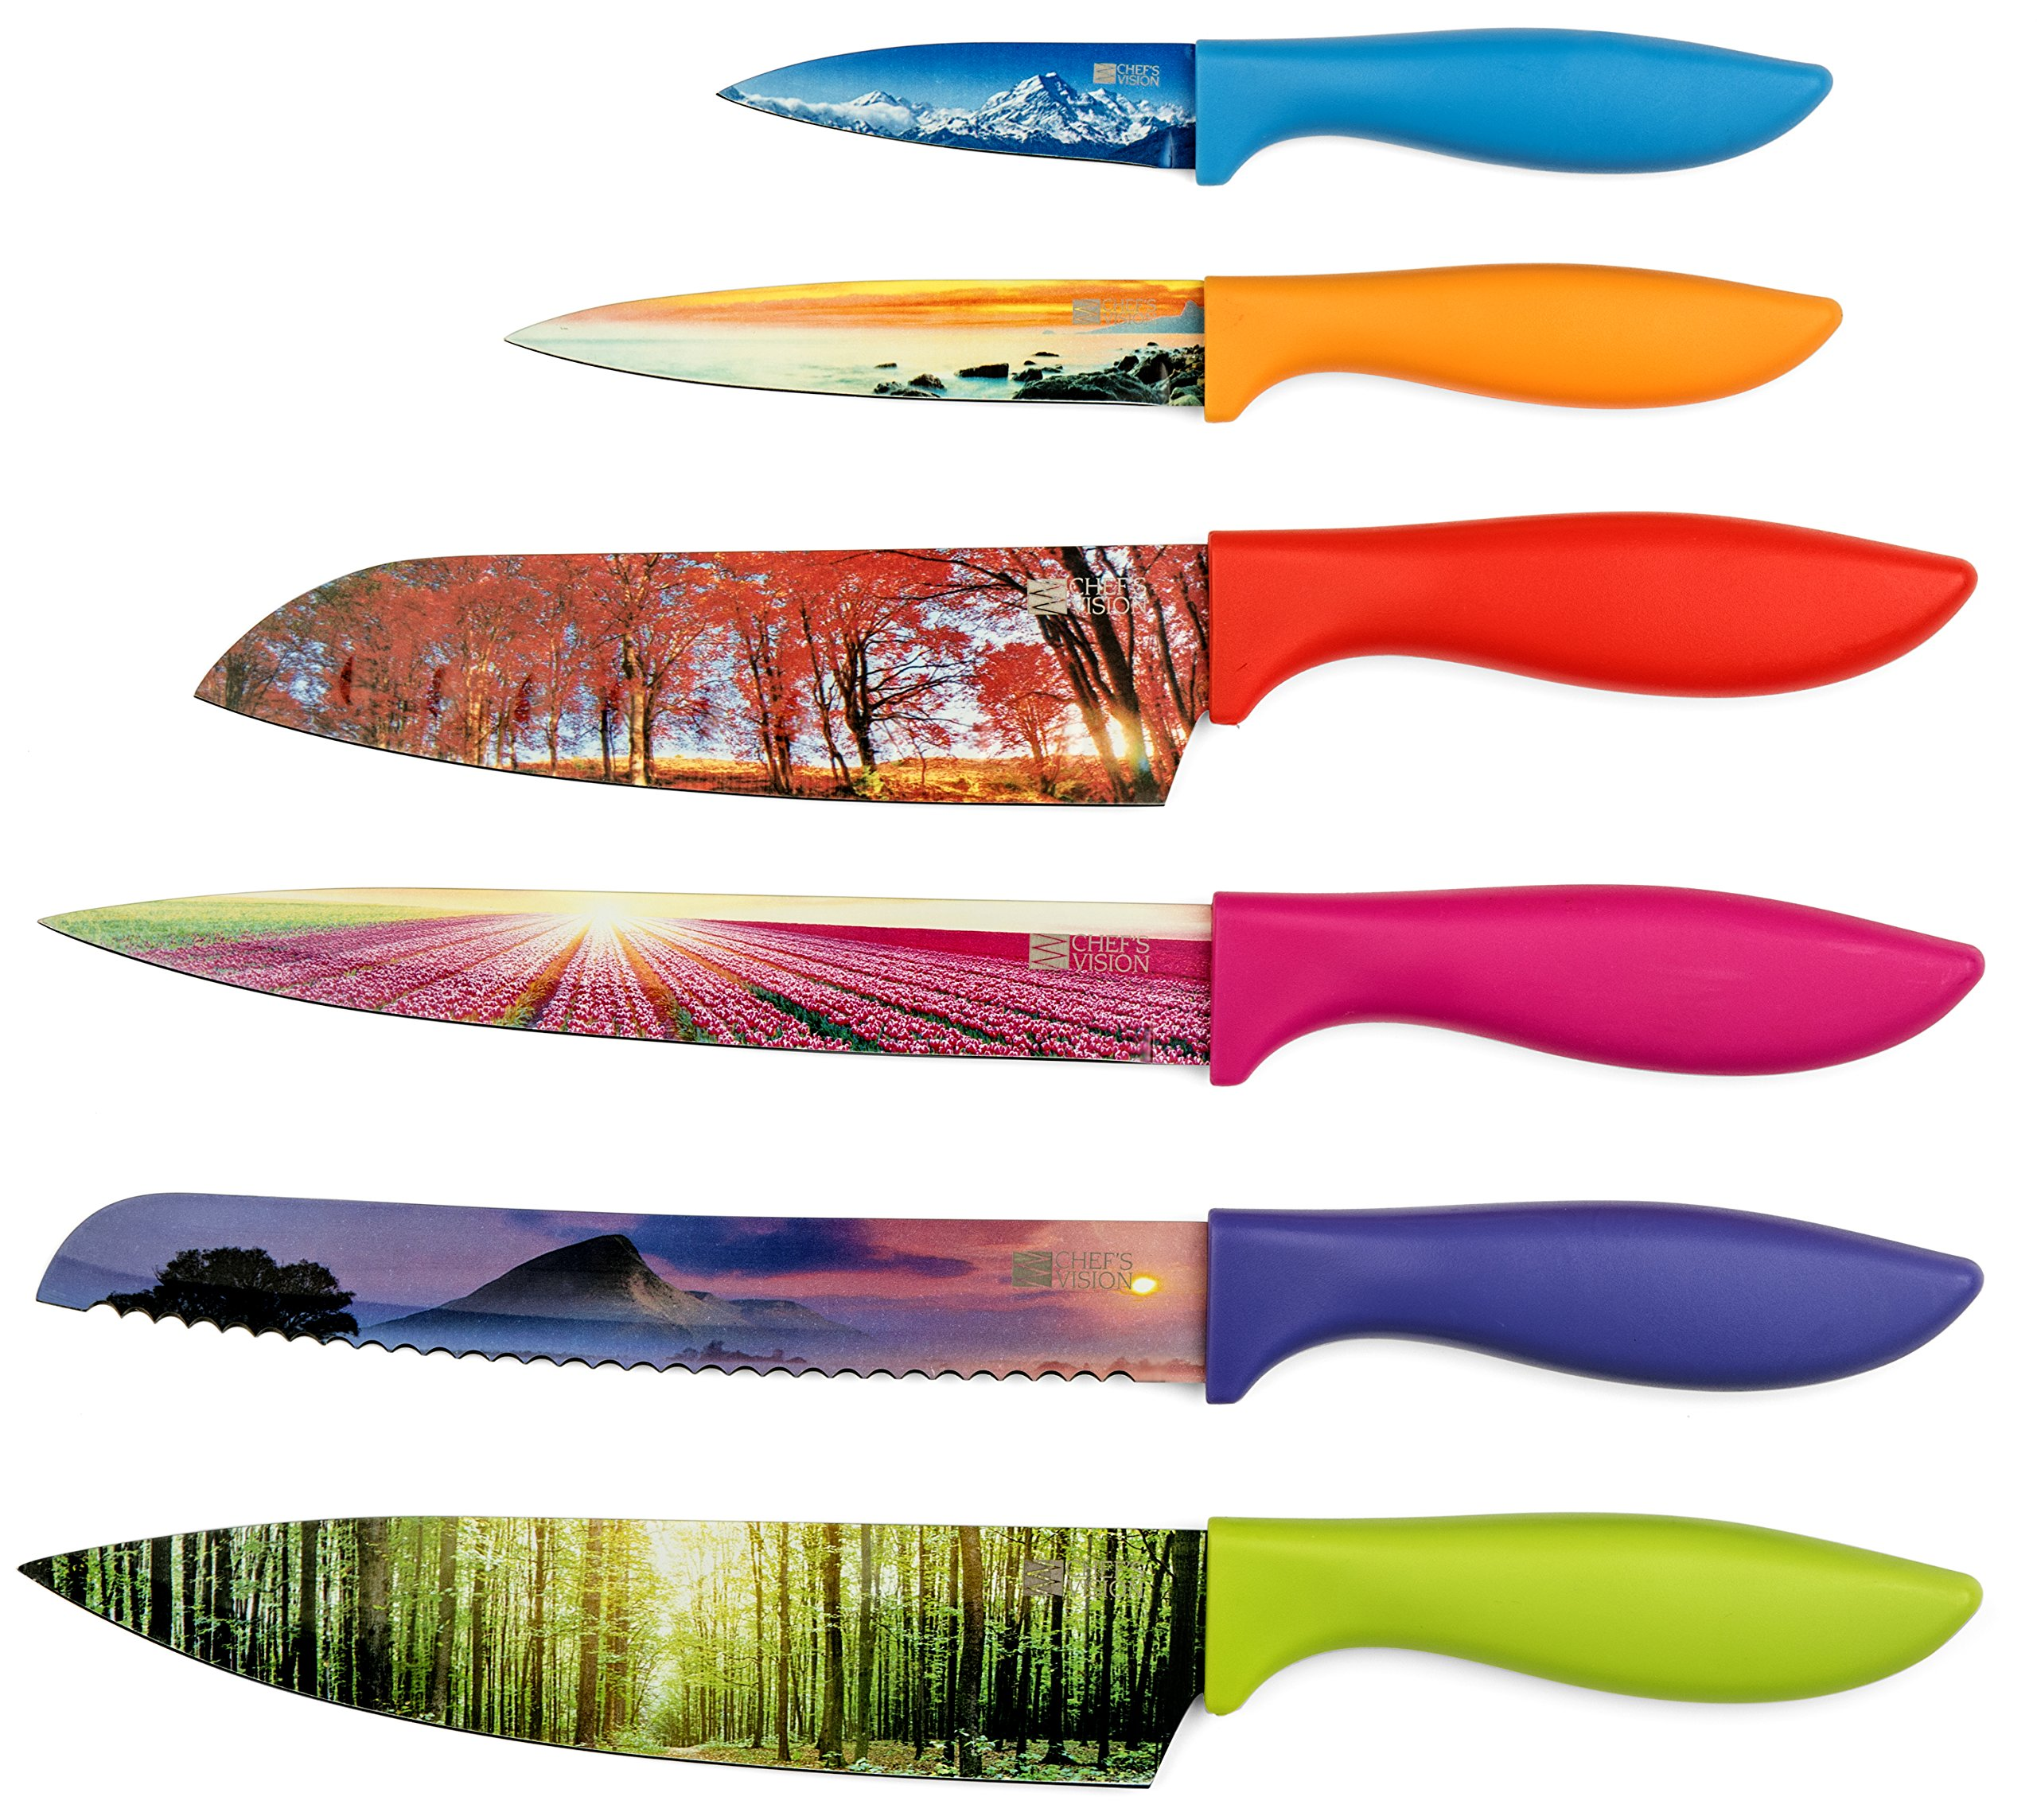 Kitchen Knife Set in Gift Box by Chef's Vision - Landscape Series - Beautiful, Unique Gifts For Her and For Him - 6 Piece Color Knife Set - Chef, Bread, Slicer, Santoku, Utility and Paring Knives